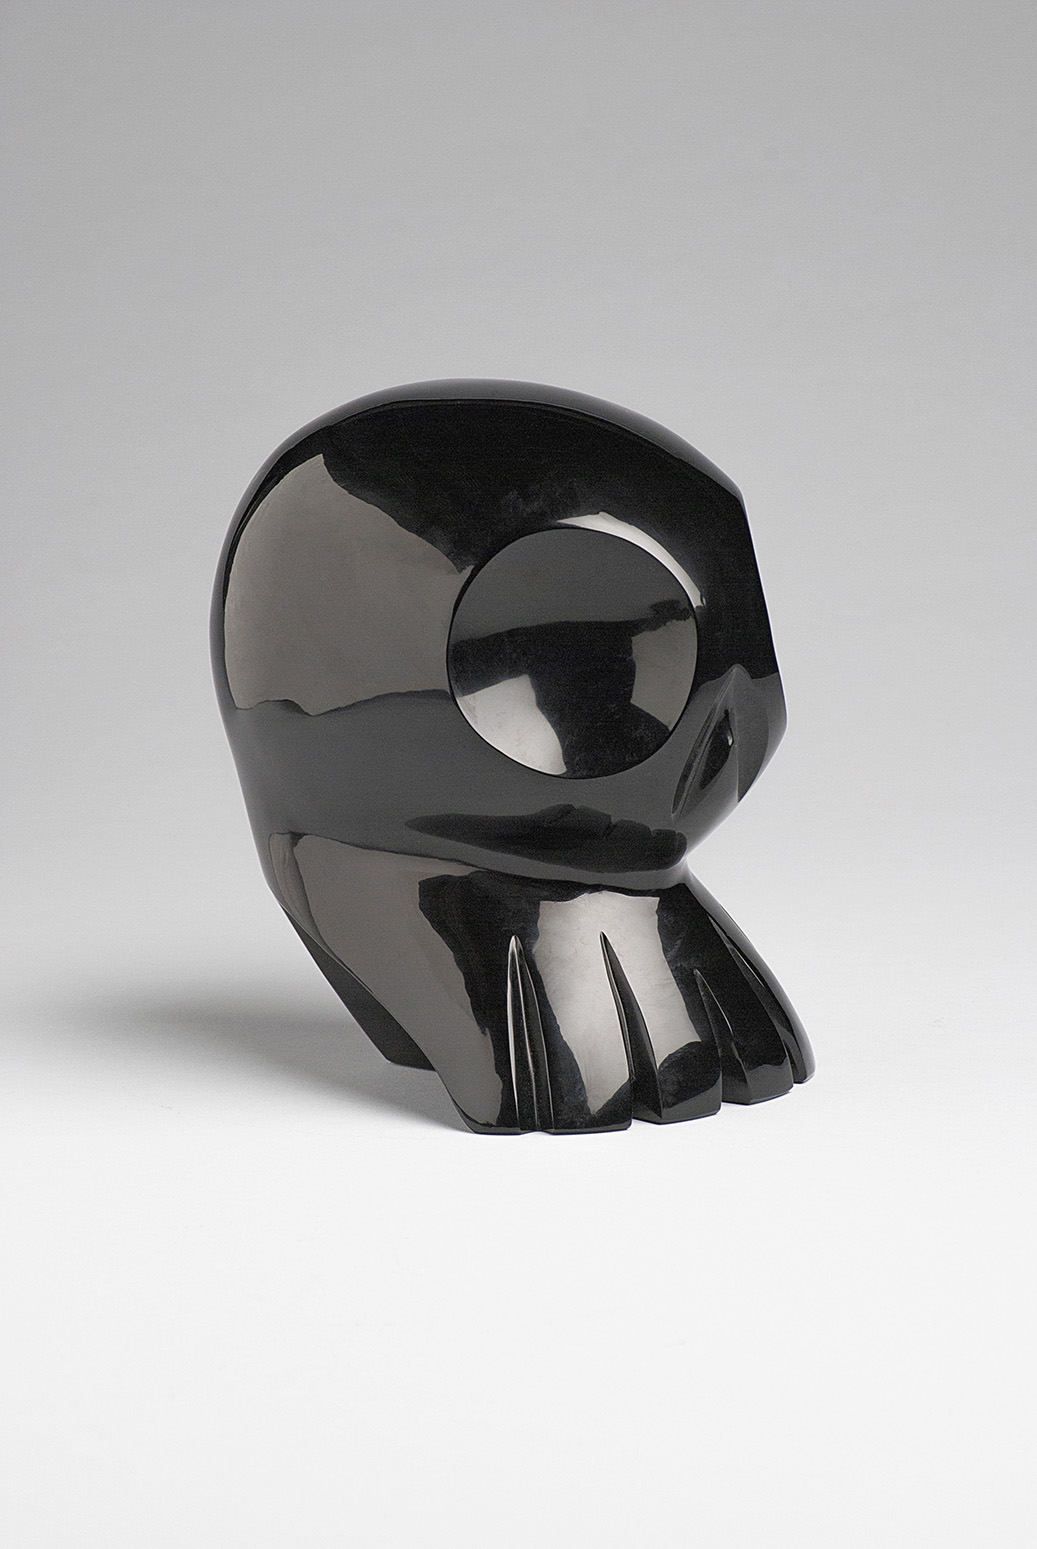 Alien, Obsidian sculpture referencing mexican skull